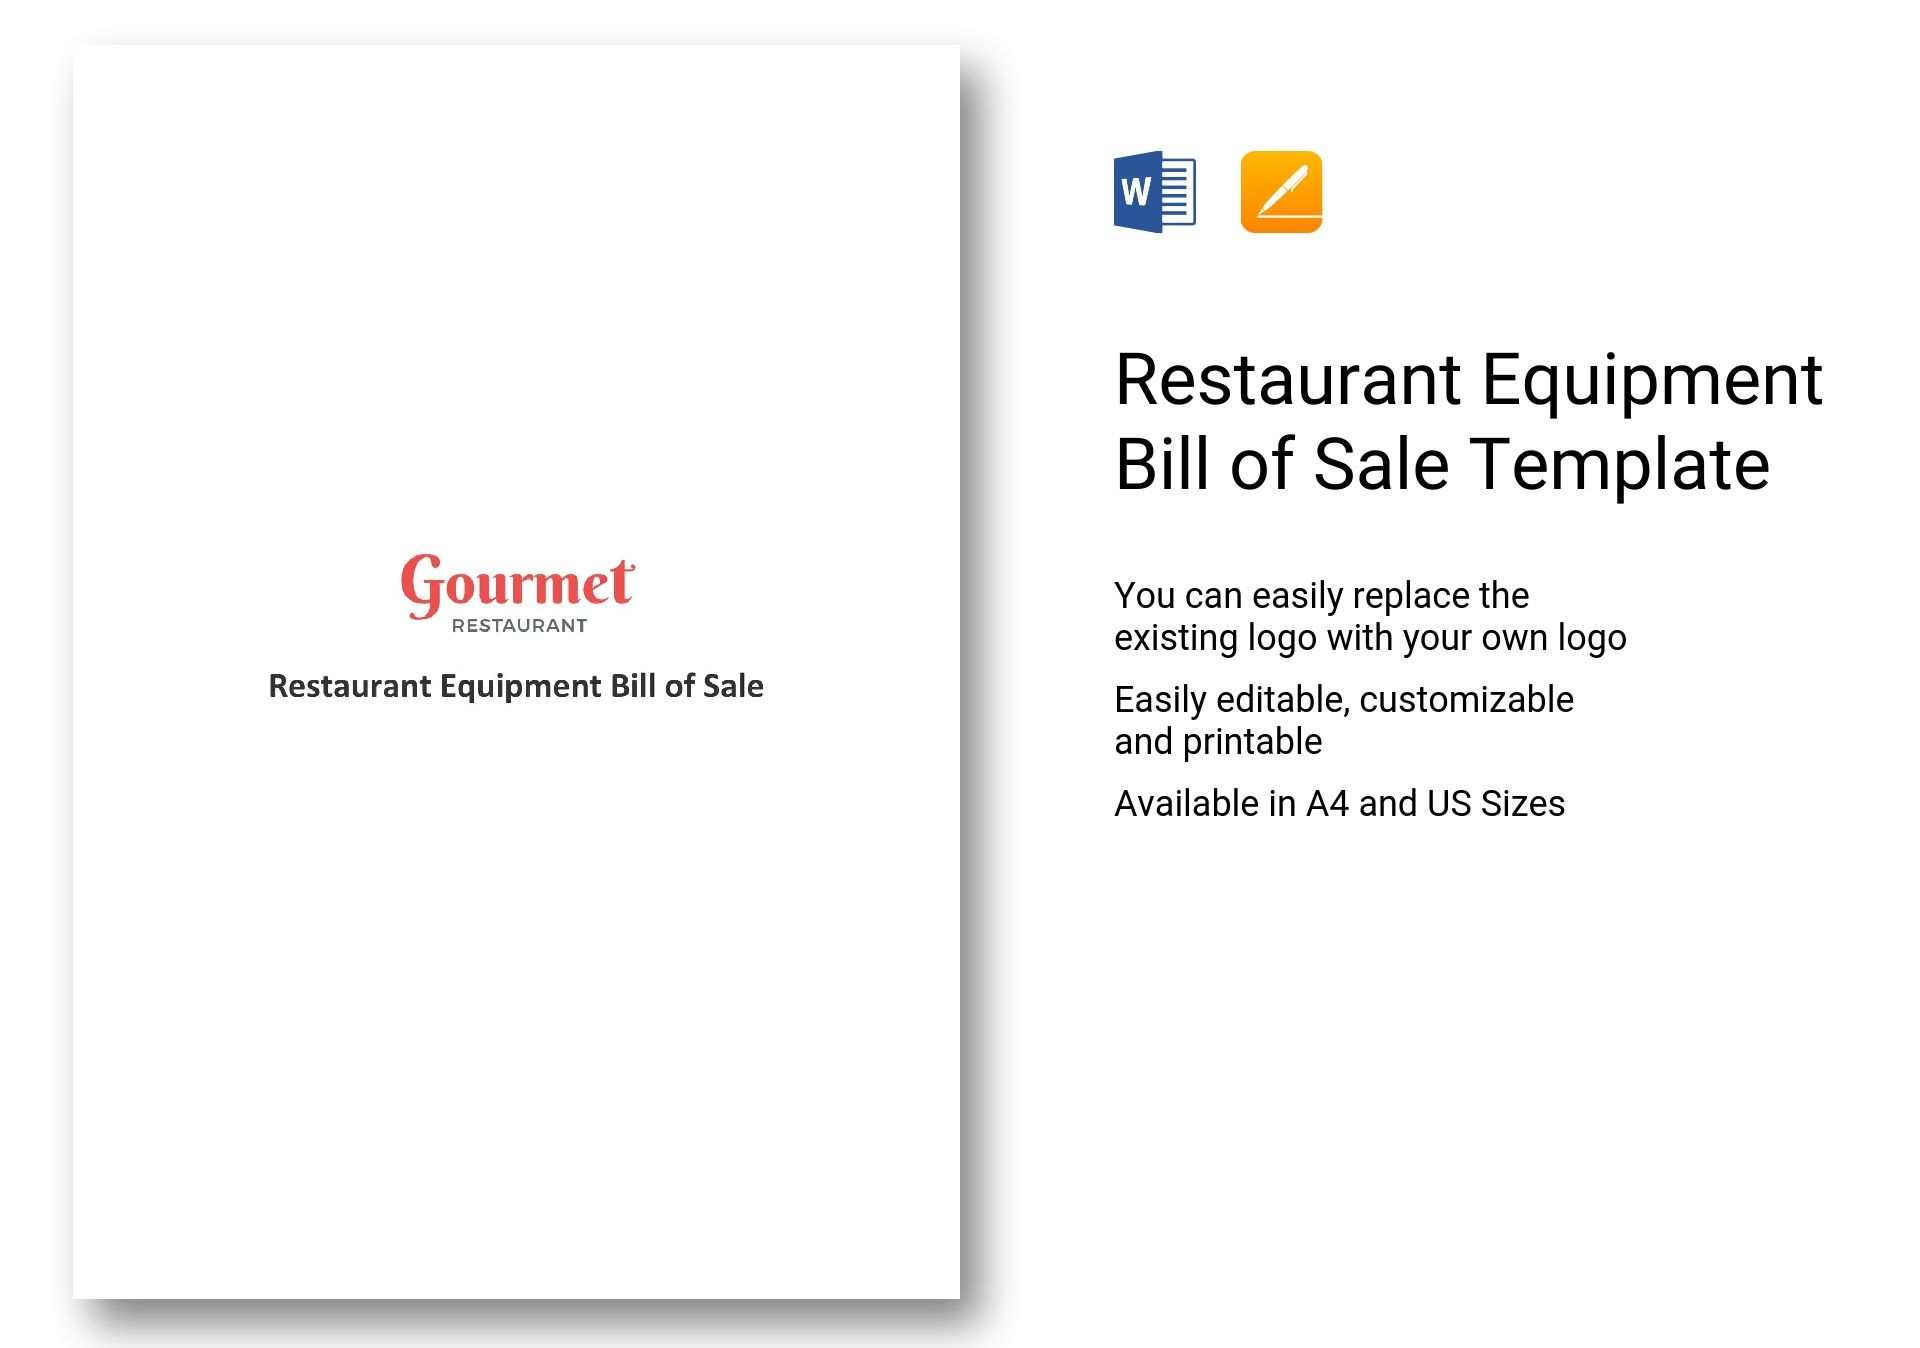 Restaurant Equipment Bill of Sale